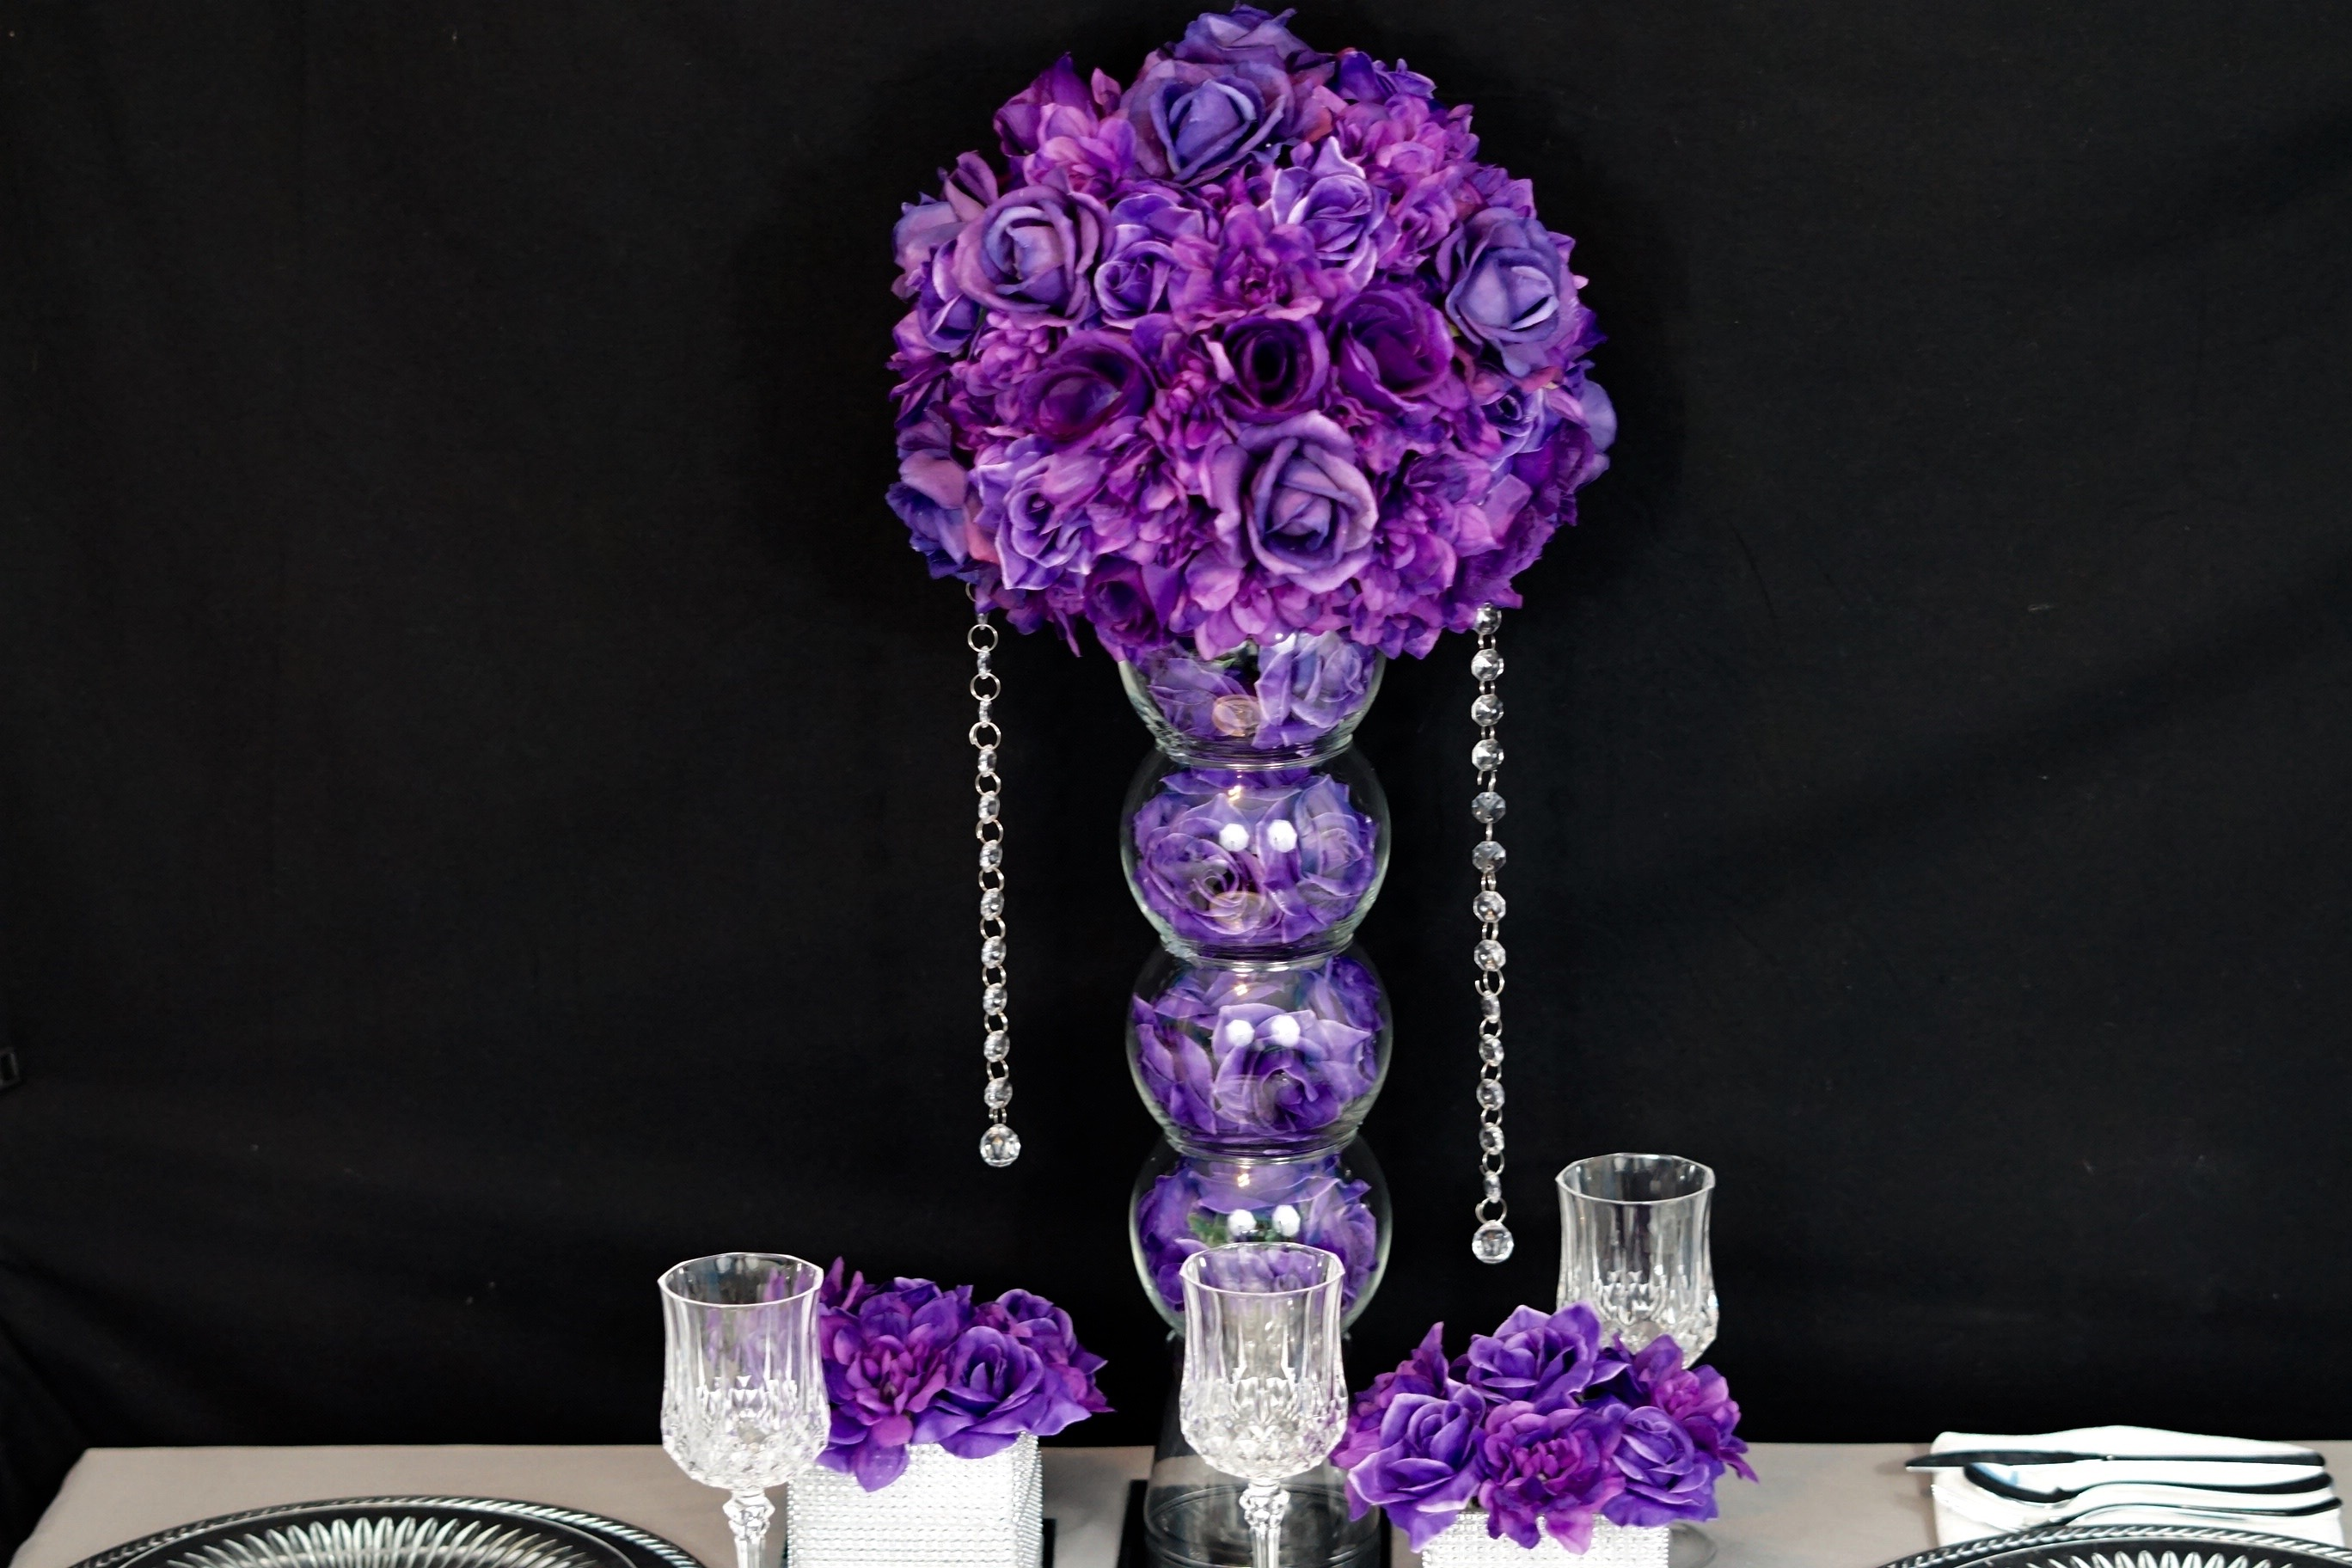 Diy purple passion wedding centerpiece in 3 easy steps i absolutely love how this purple passion wedding centerpiece thank you shunika for letting us be apart of your special day reviewsmspy